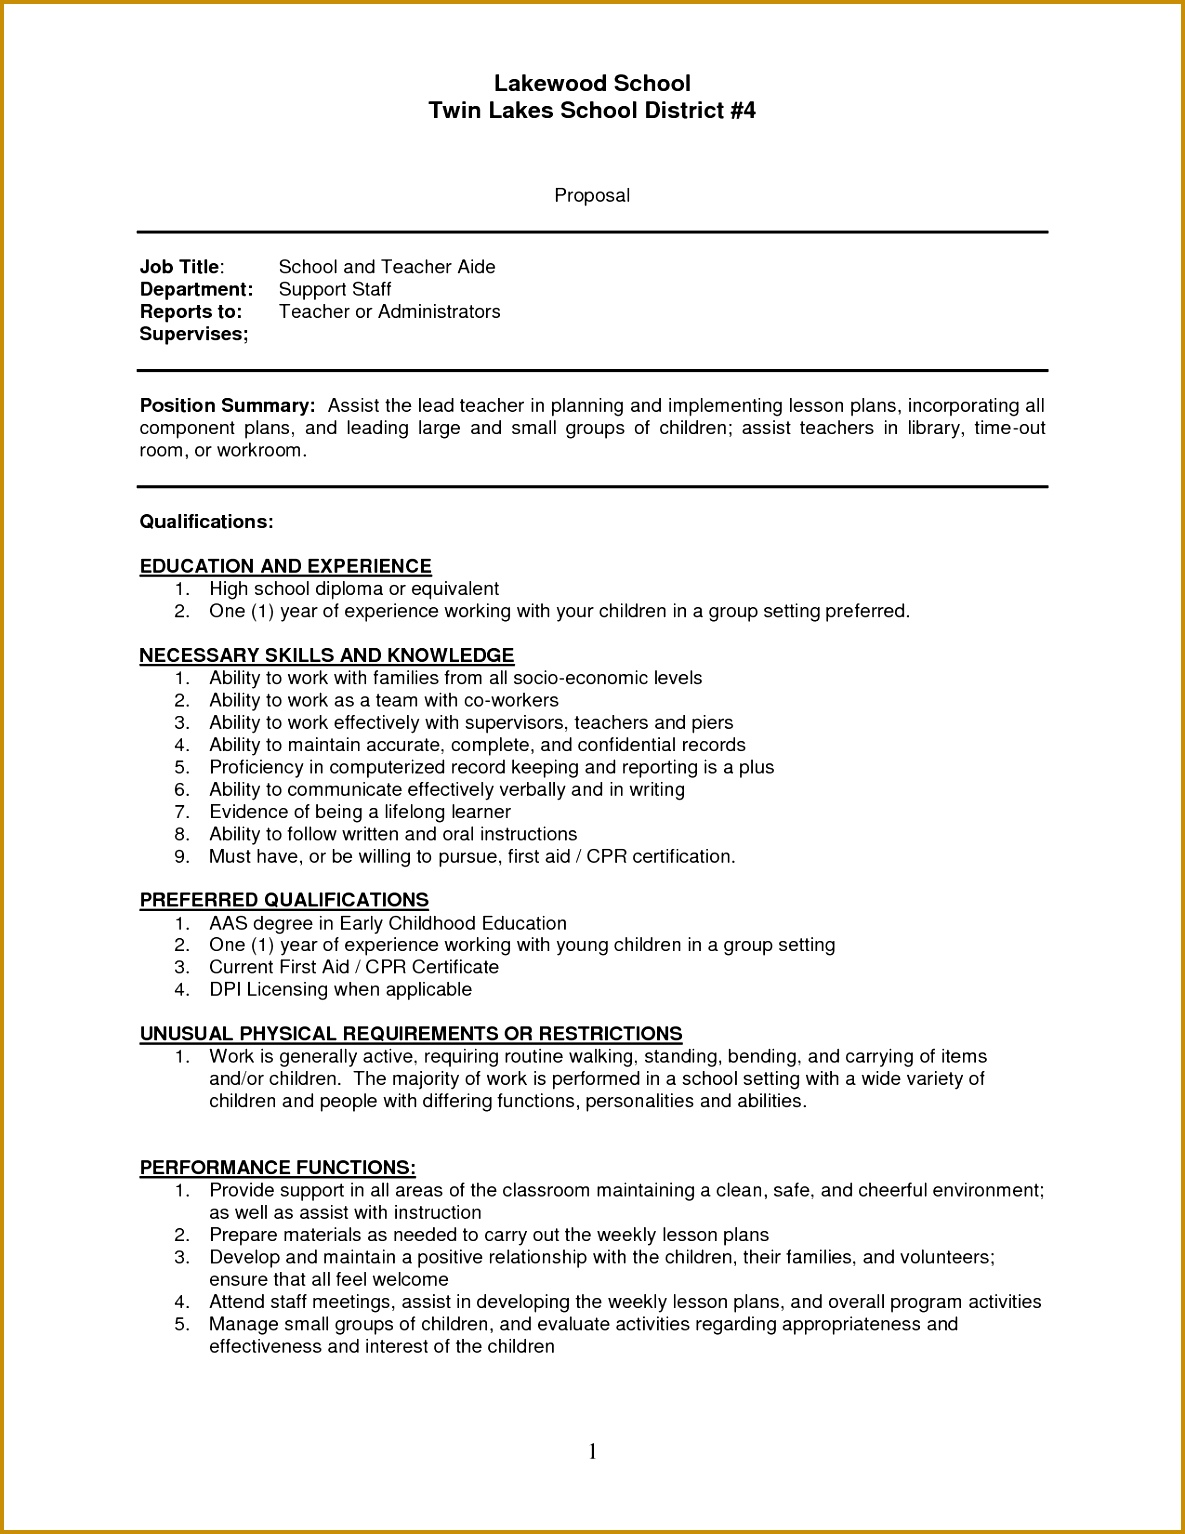 mesmerizing resumes for assistant principals for teacher assistant sample resume sample resume of teachers aides of resumes for assistant principals 15341185